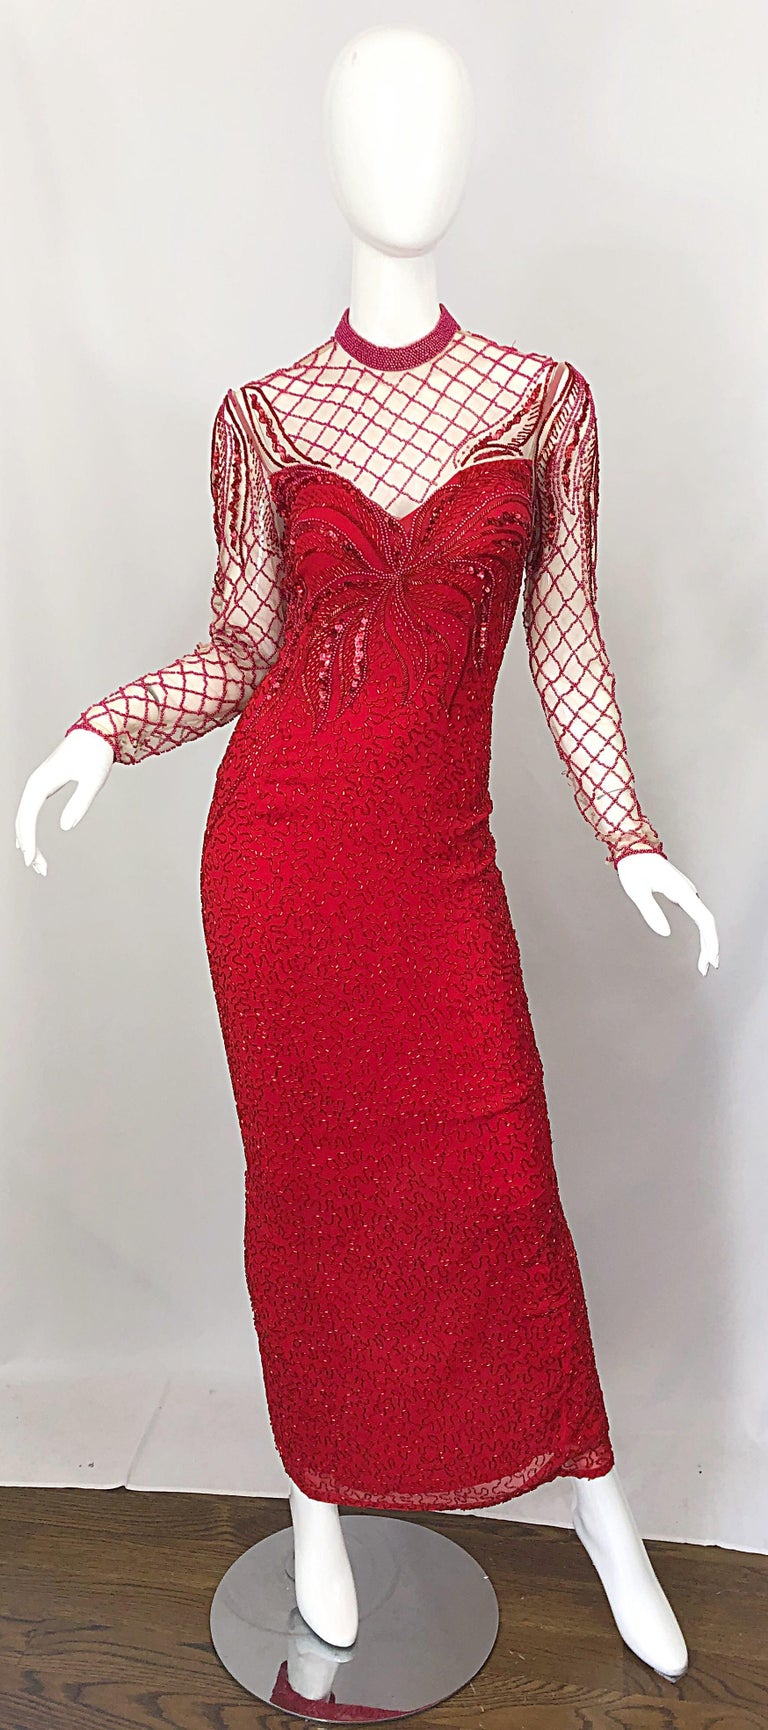 Sensational vintage early 90s OLEG CASSINI lipstick red silk chiffon fully beaded evening gown / dress ! Features thousands of hand-sewn beads and sequins throughout. Sheer mesh above the bust with beadwork. Hidden zipper up the back with